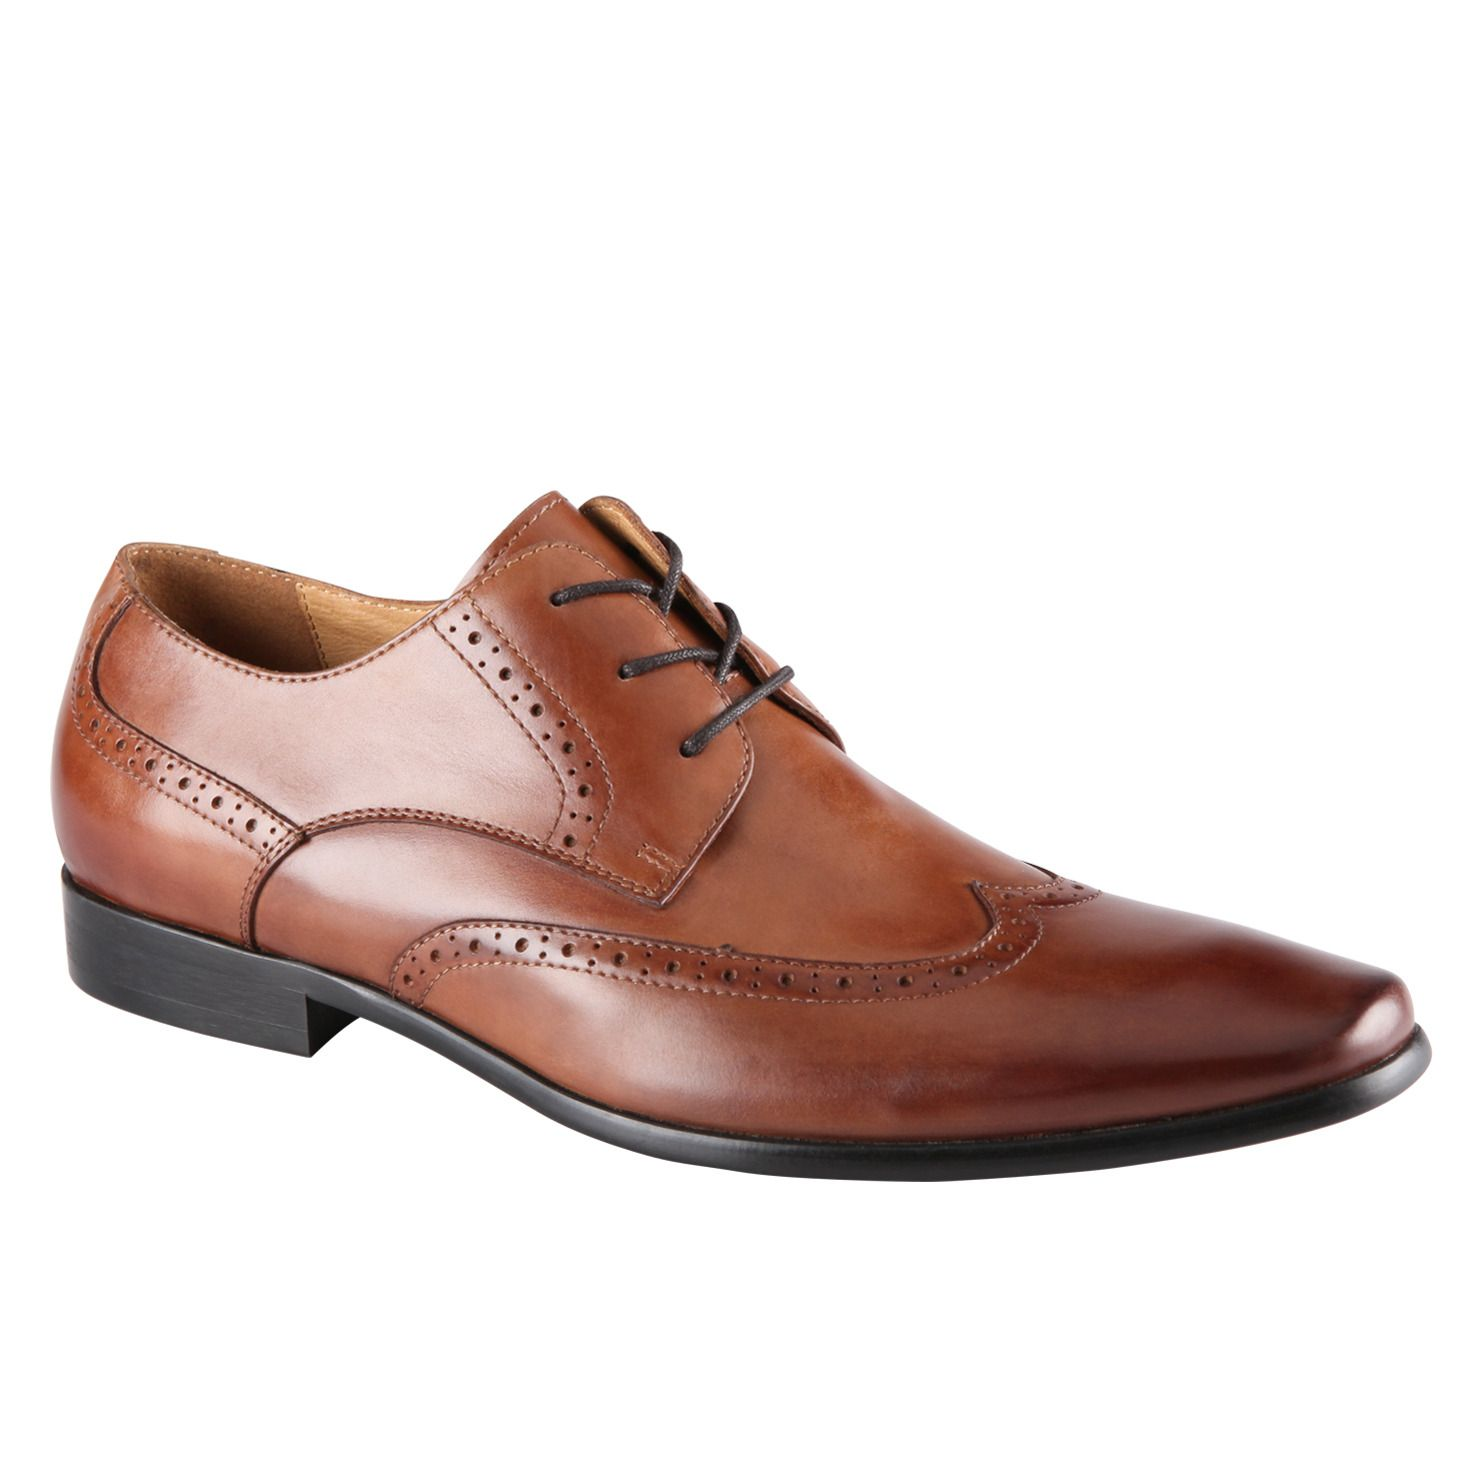 d338dcdc5f2 KITCHELL - men's dress lace-ups shoes for sale at ALDO Shoes. | GQ ...